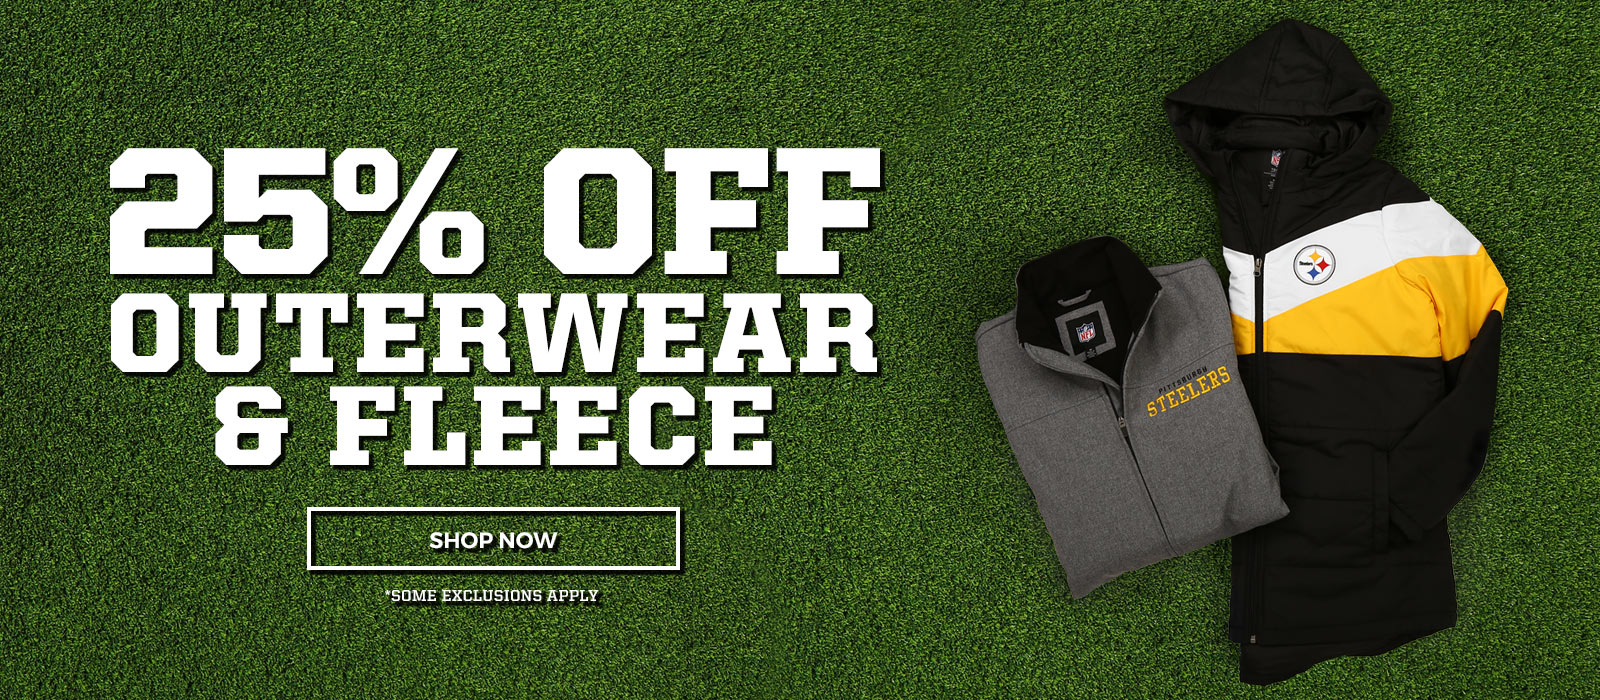 Get 25% off Outerwear and fleece.